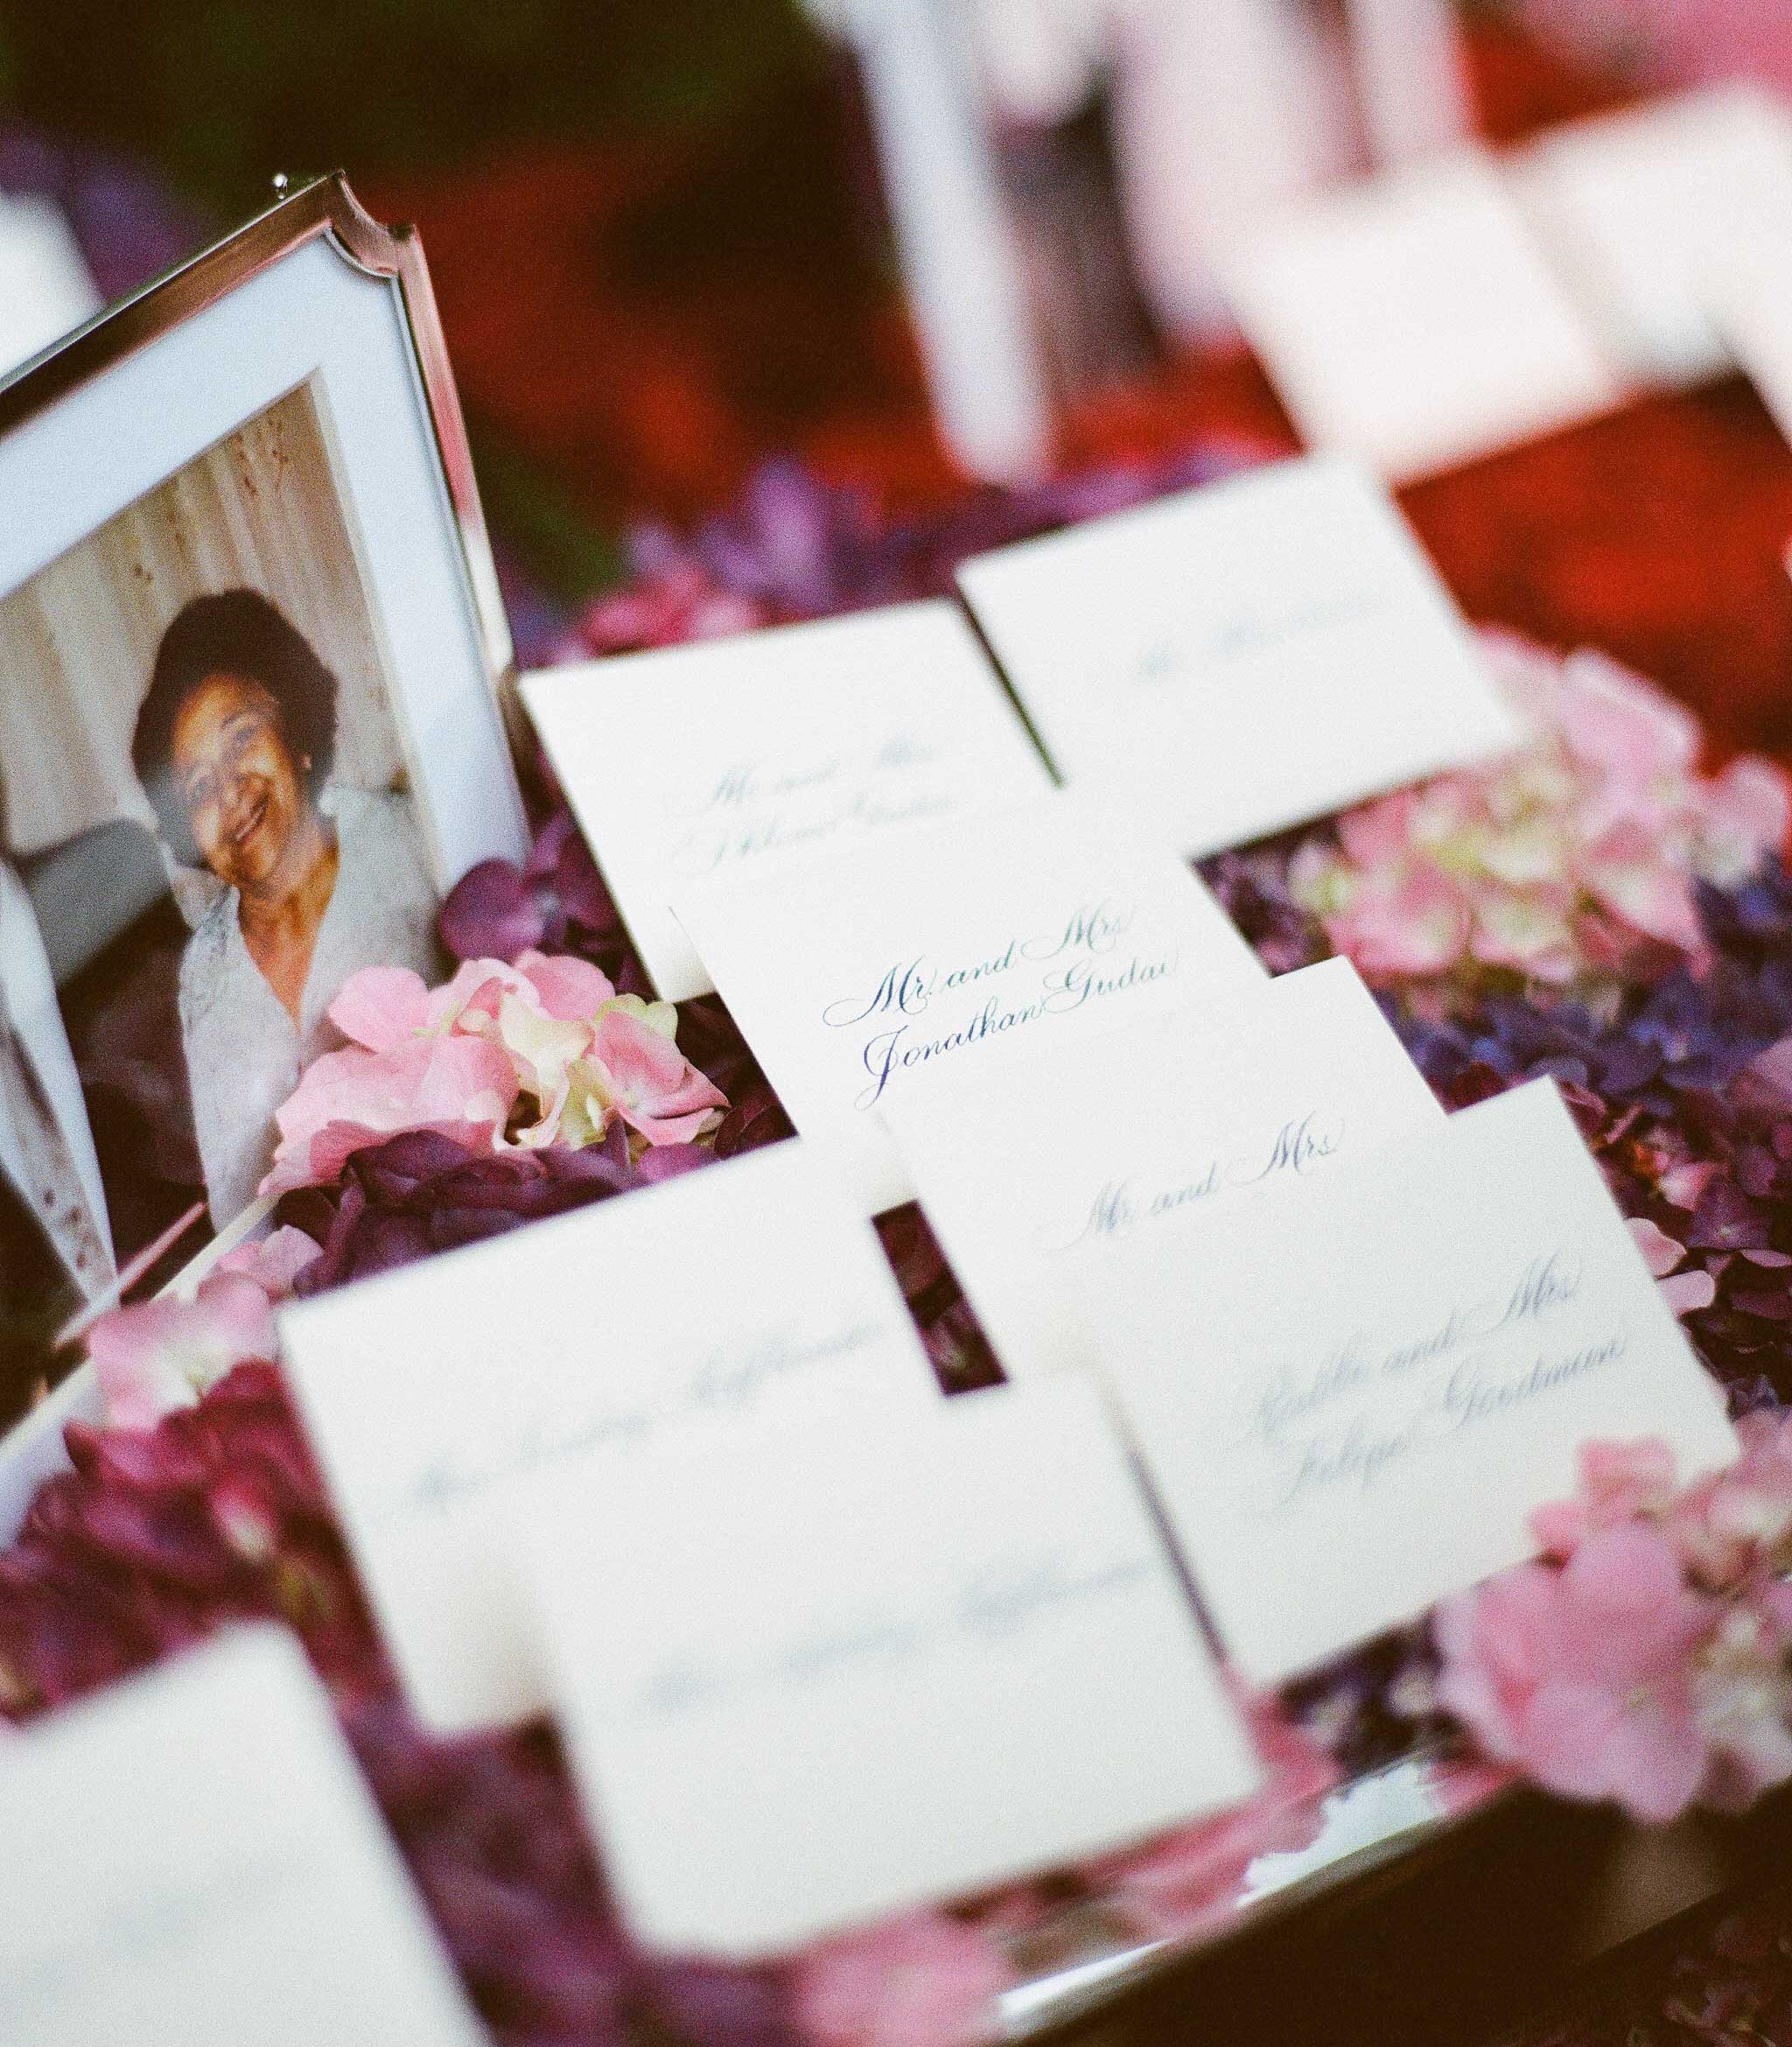 Escort cards on flower petals with photos of family members on table